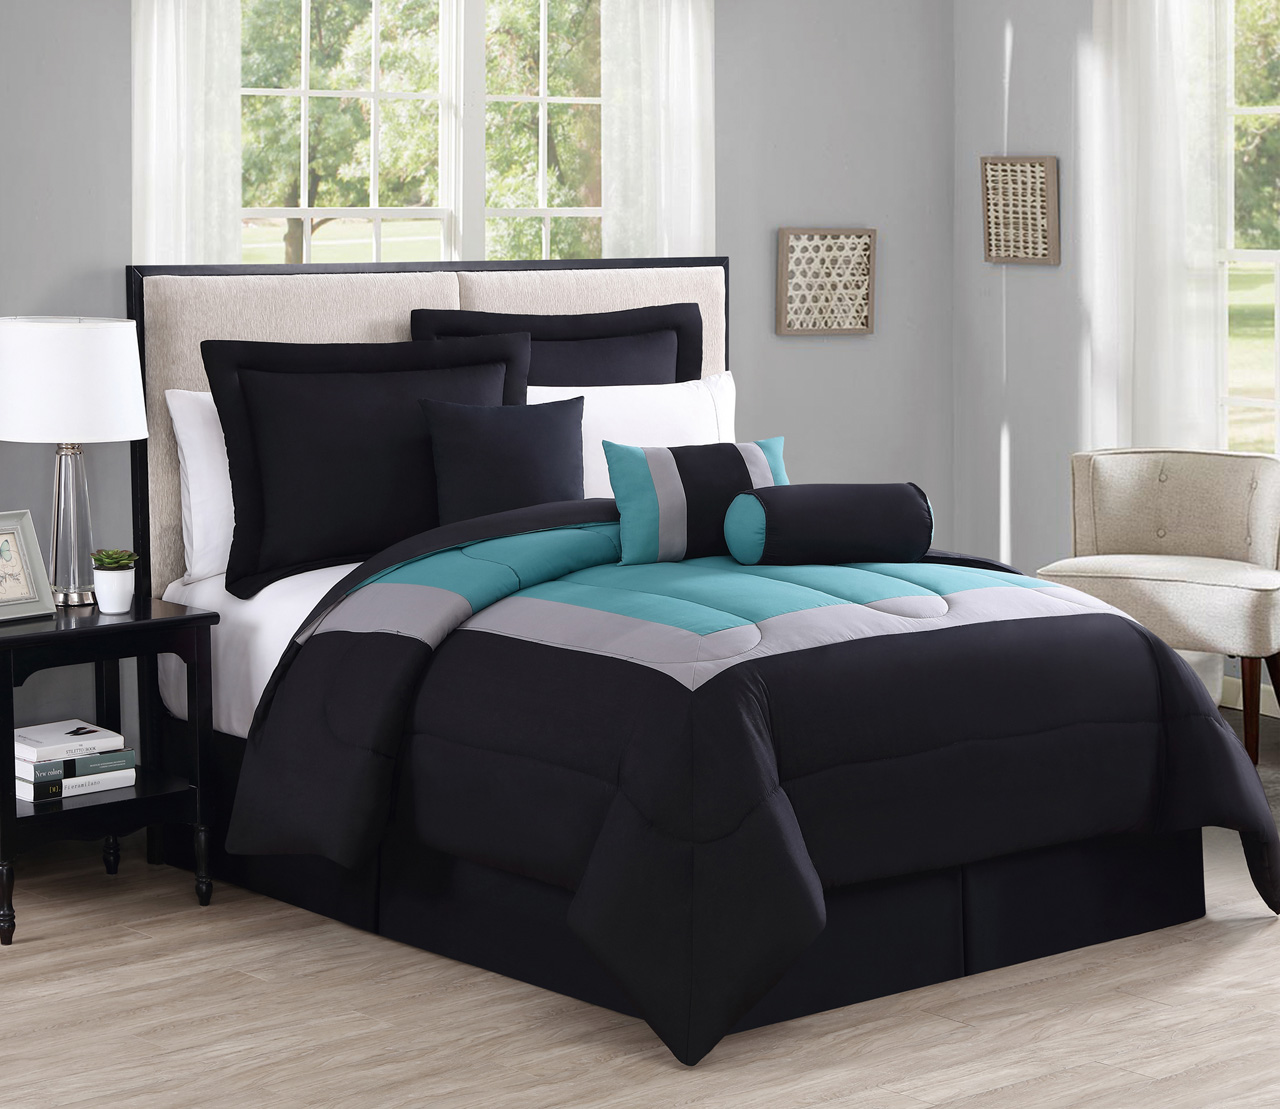 Duvet And Comforter Sets 11 Piece Cal King Rosslyn Black Teal Bed In A Bag W 600tc Sheet Set